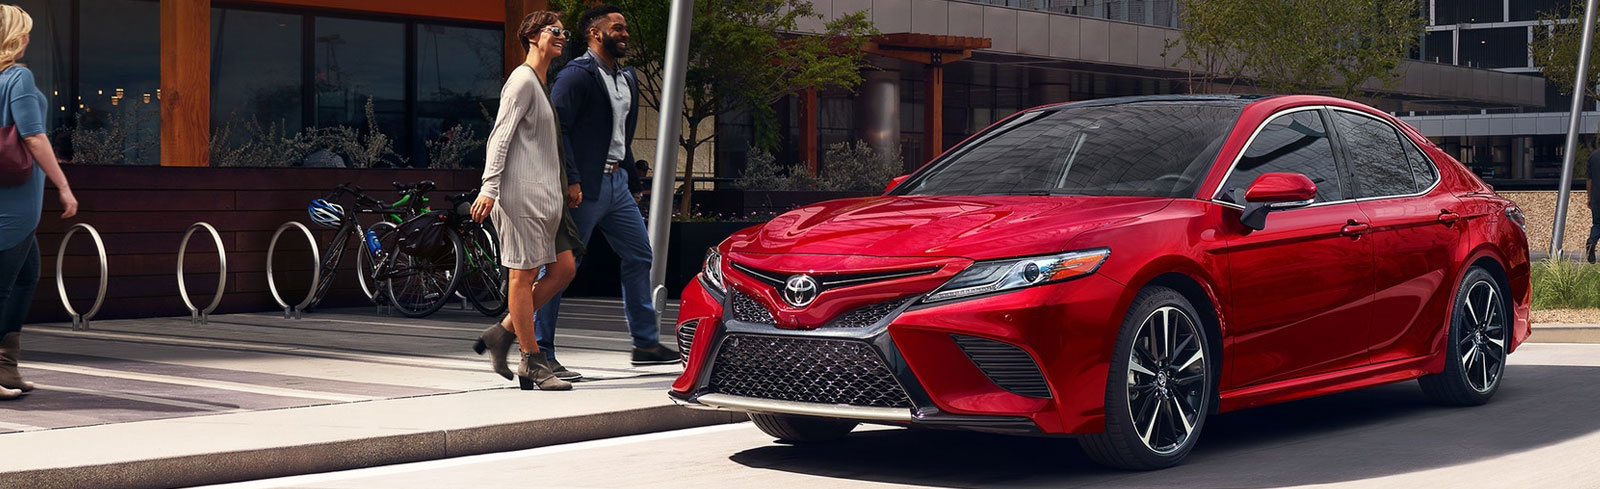 2020 Toyota Camry Sedan in Cleveland, near Cleveland Heights, Ohio